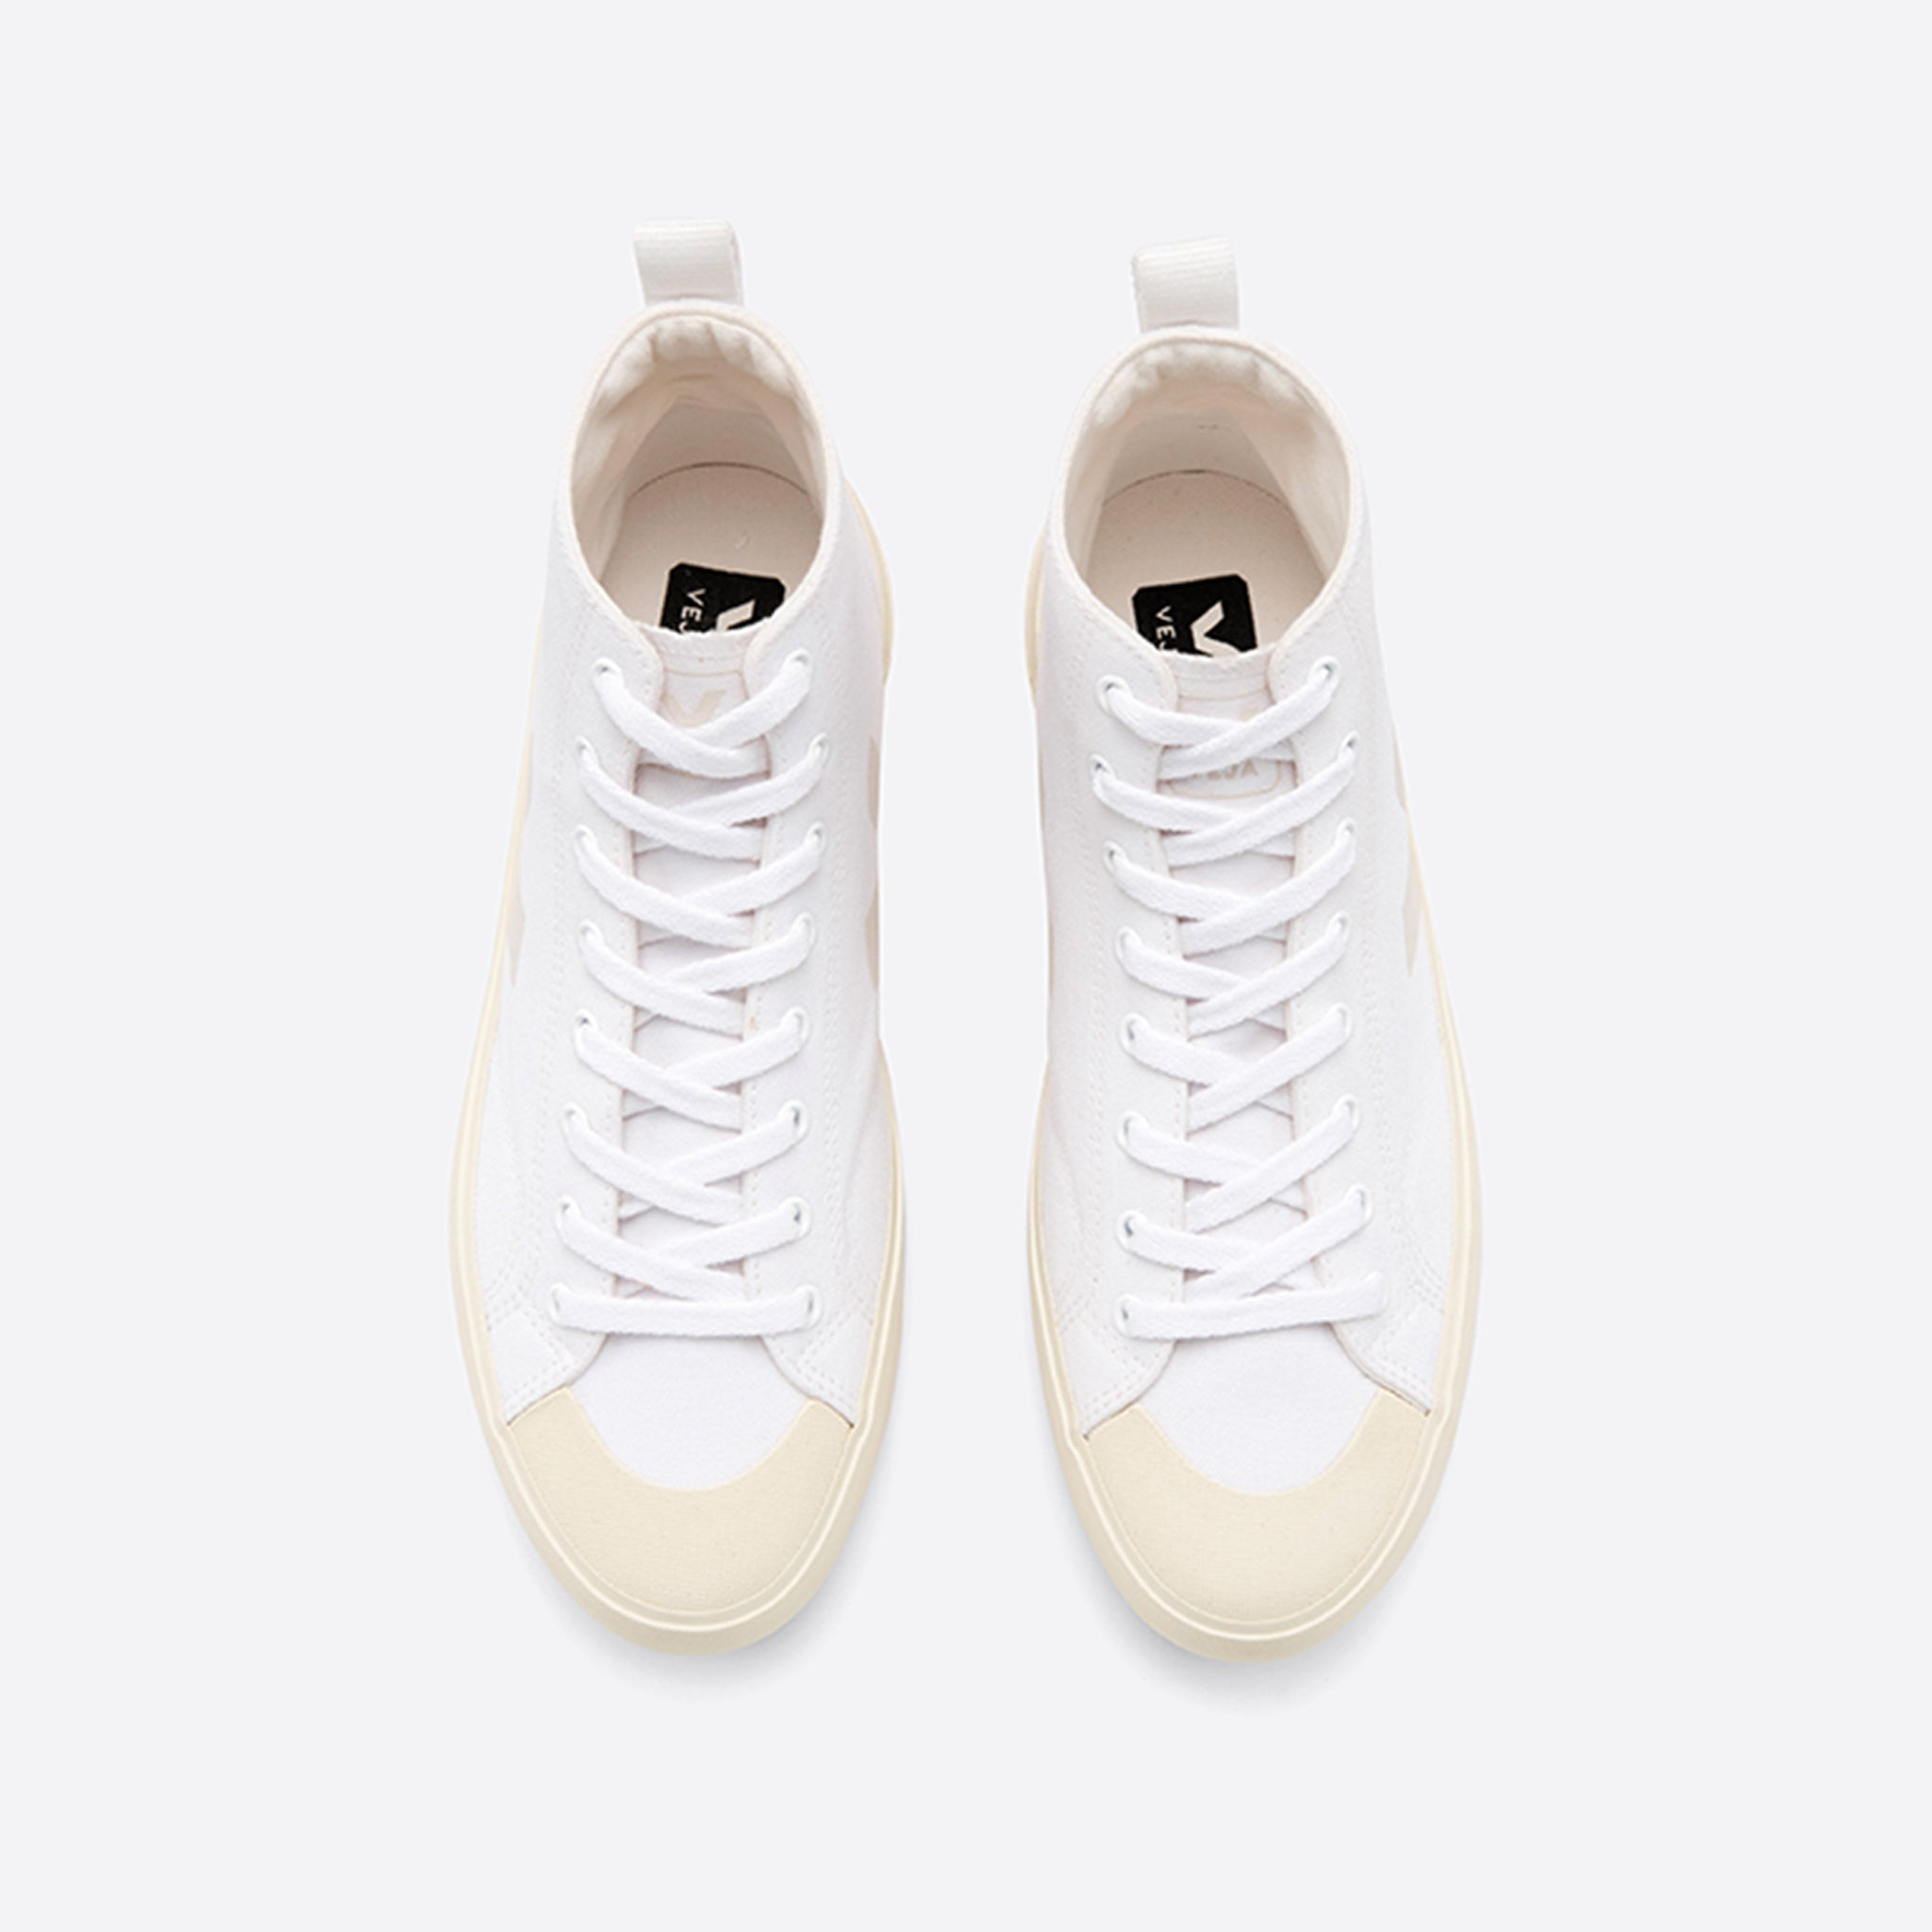 Veja Nova High Top Canvas in White Butter-Sole